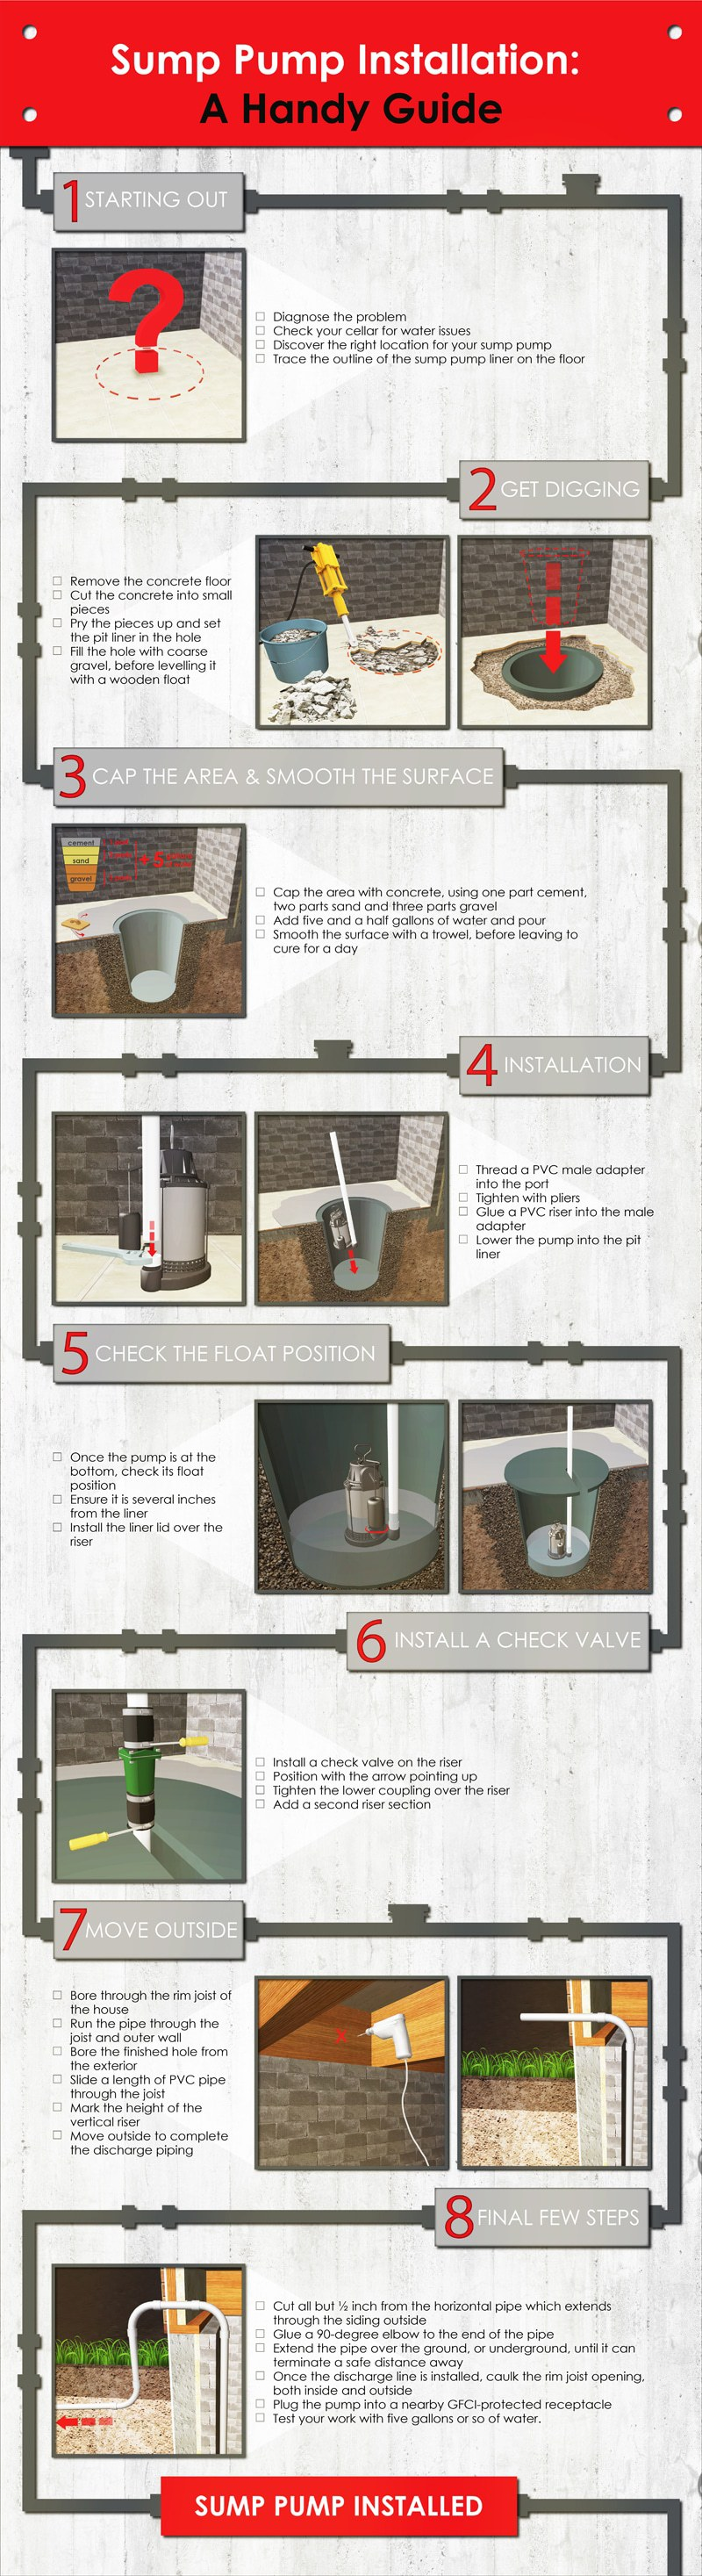 Sump Pump Diagram : From Information to Installation | Finishing